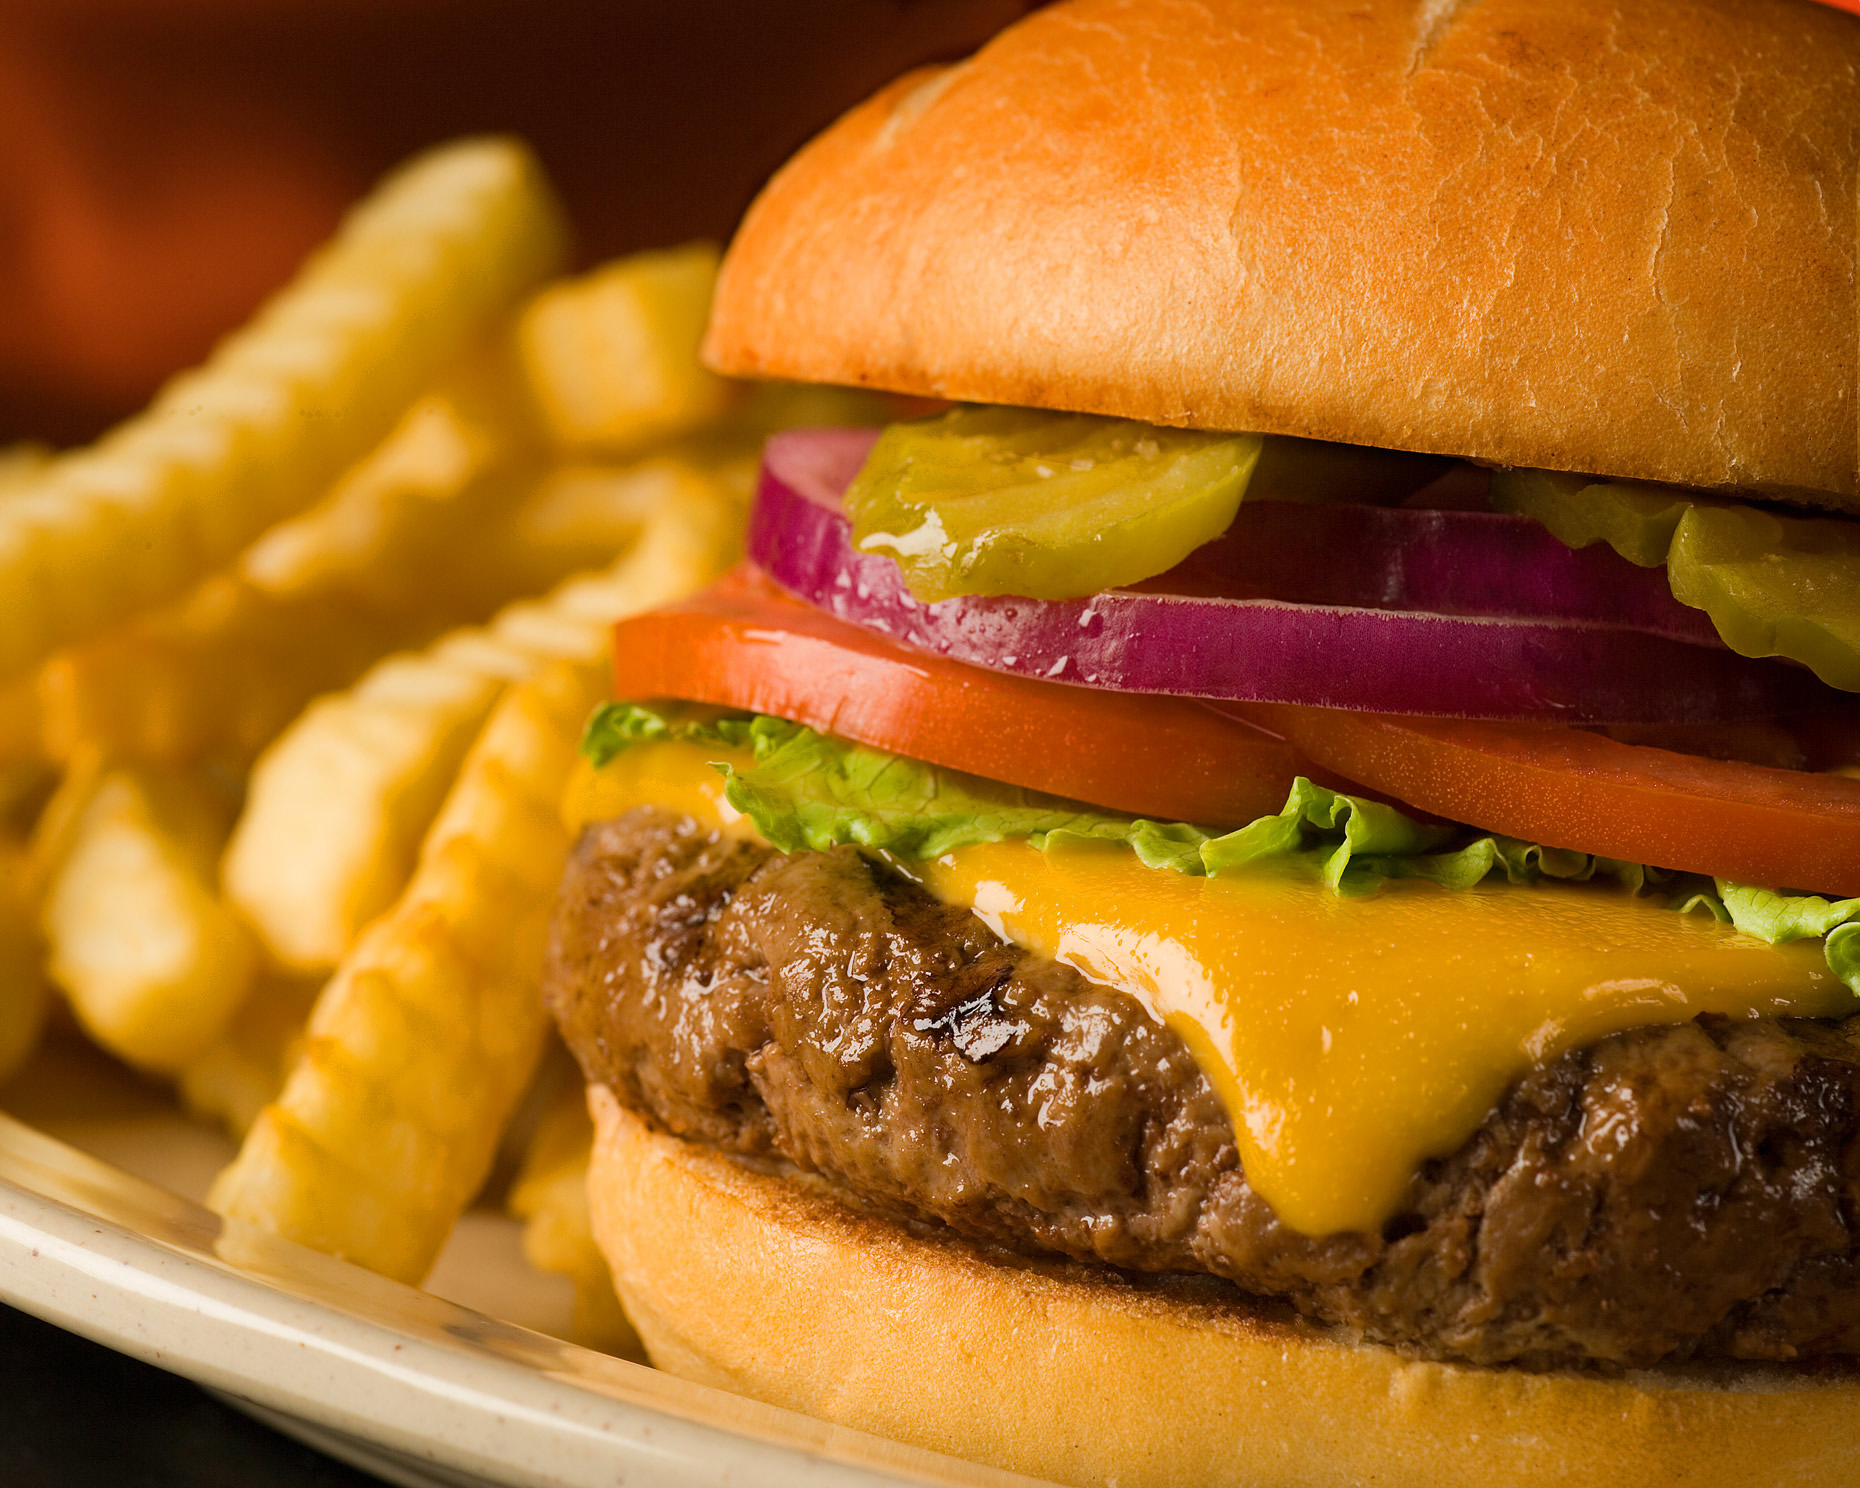 Food Photography | Cheeseburger & Fries